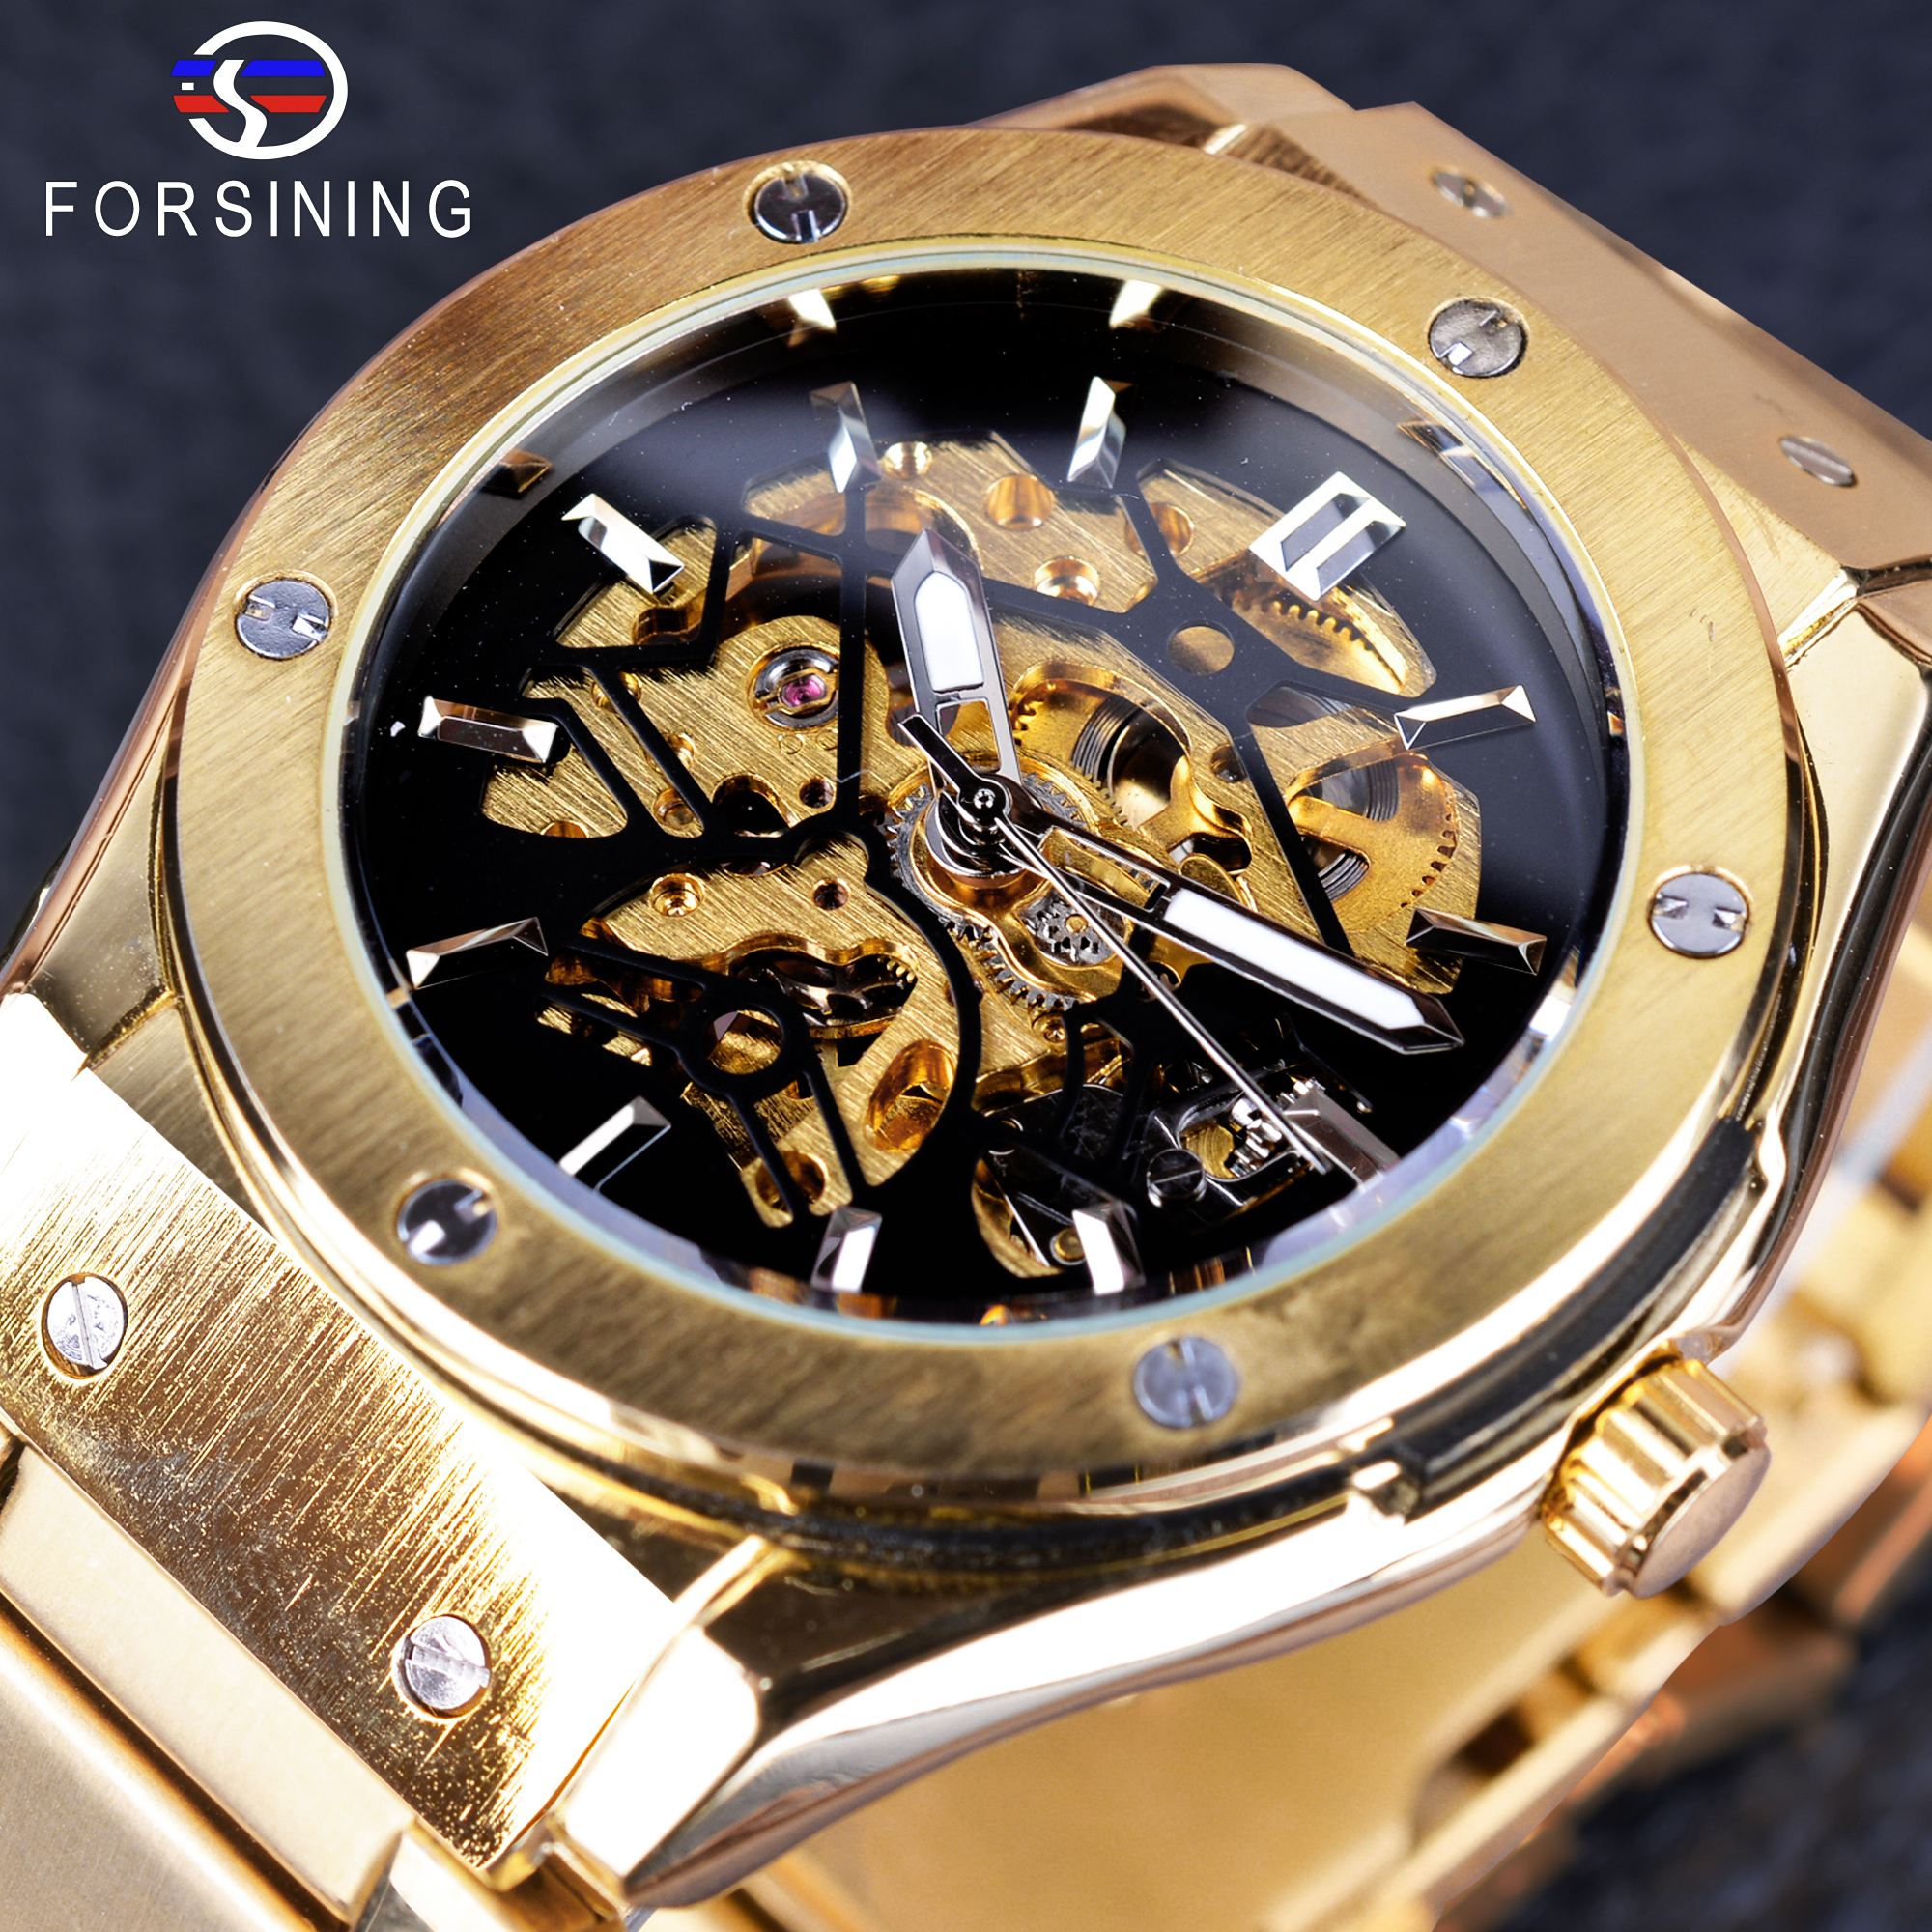 Forsining Steampunk Skeleton Male Clock Golden Stainless Steel Openwork Men Automatic Watch Folding Clasp with Safety Wristwatch forsining golden stainless steel sport watch steampunk men watch luminous openwork mechanical watches folding clasp with safety